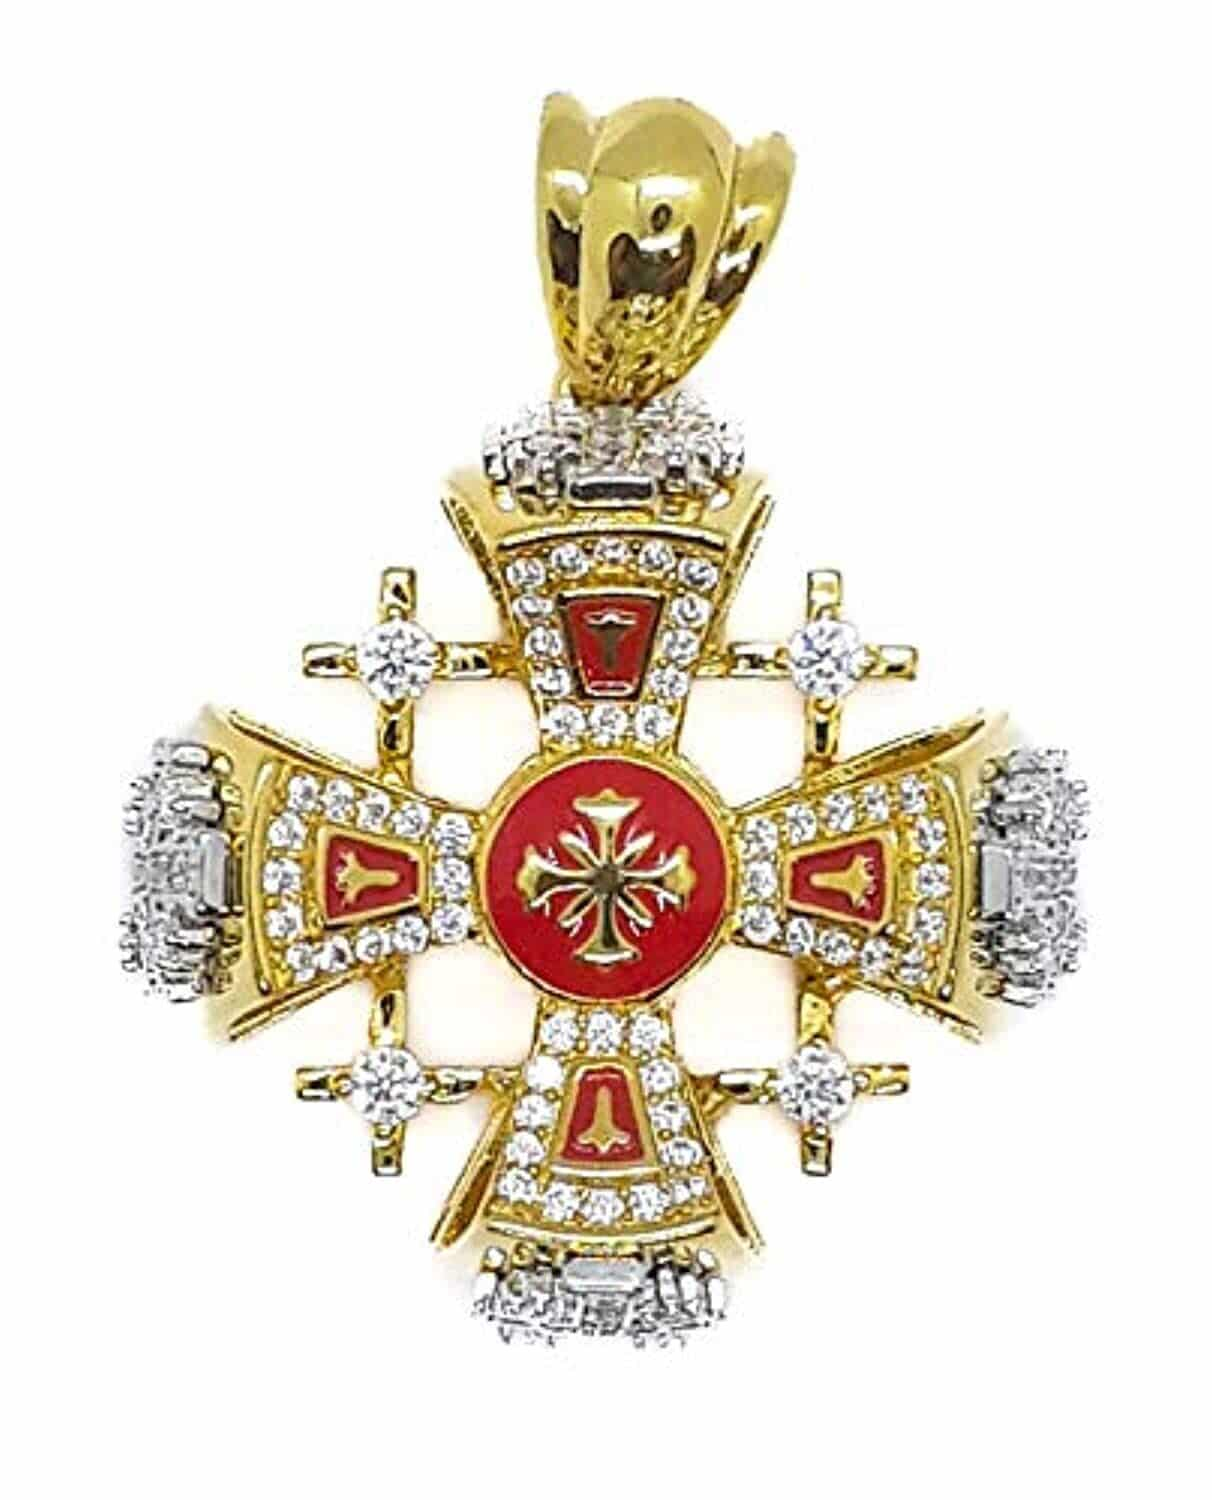 Why Shop for Holy Gifts of Jerusalem Themed Spiritual Items?